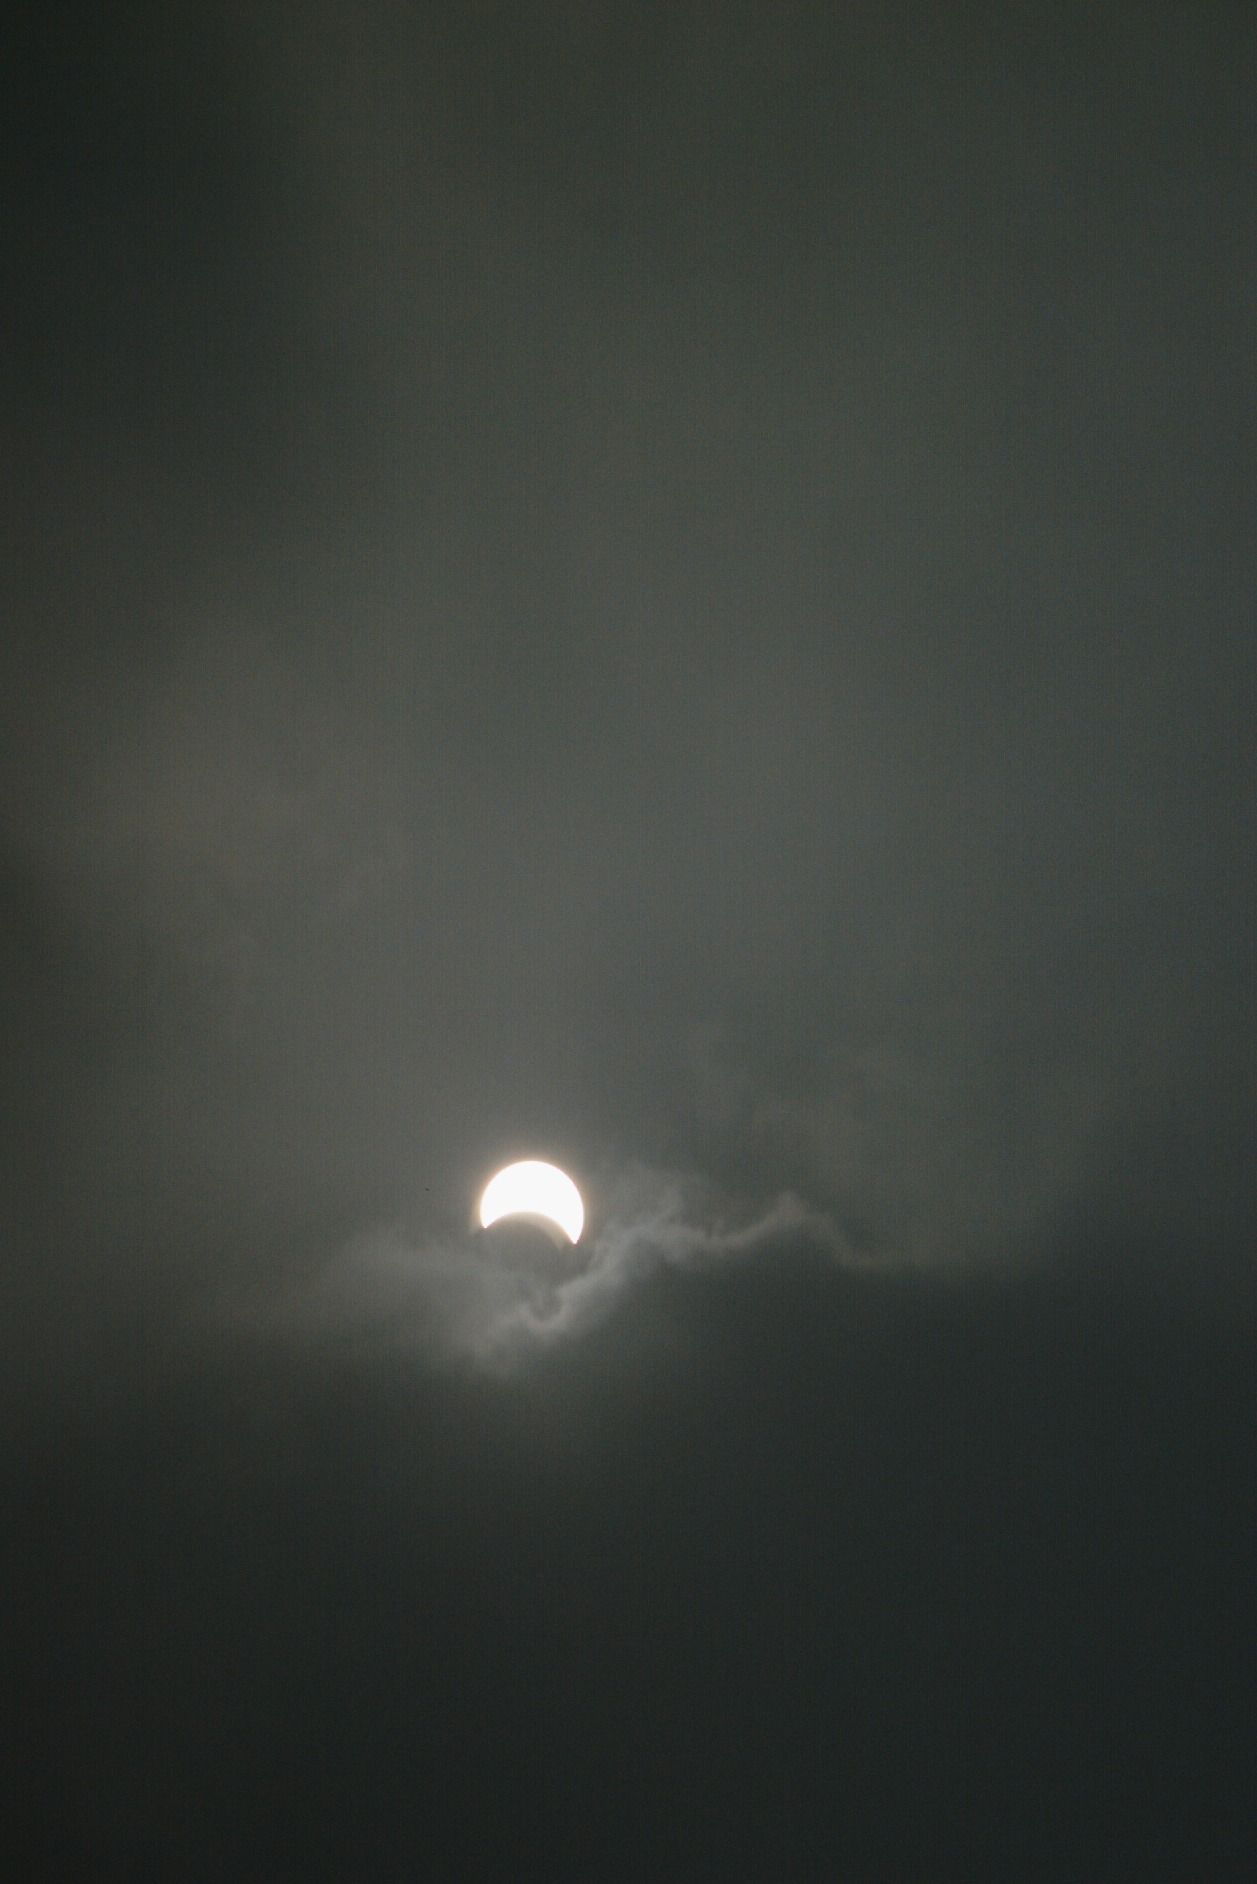 Solar eclipse as seen on Beijing, China